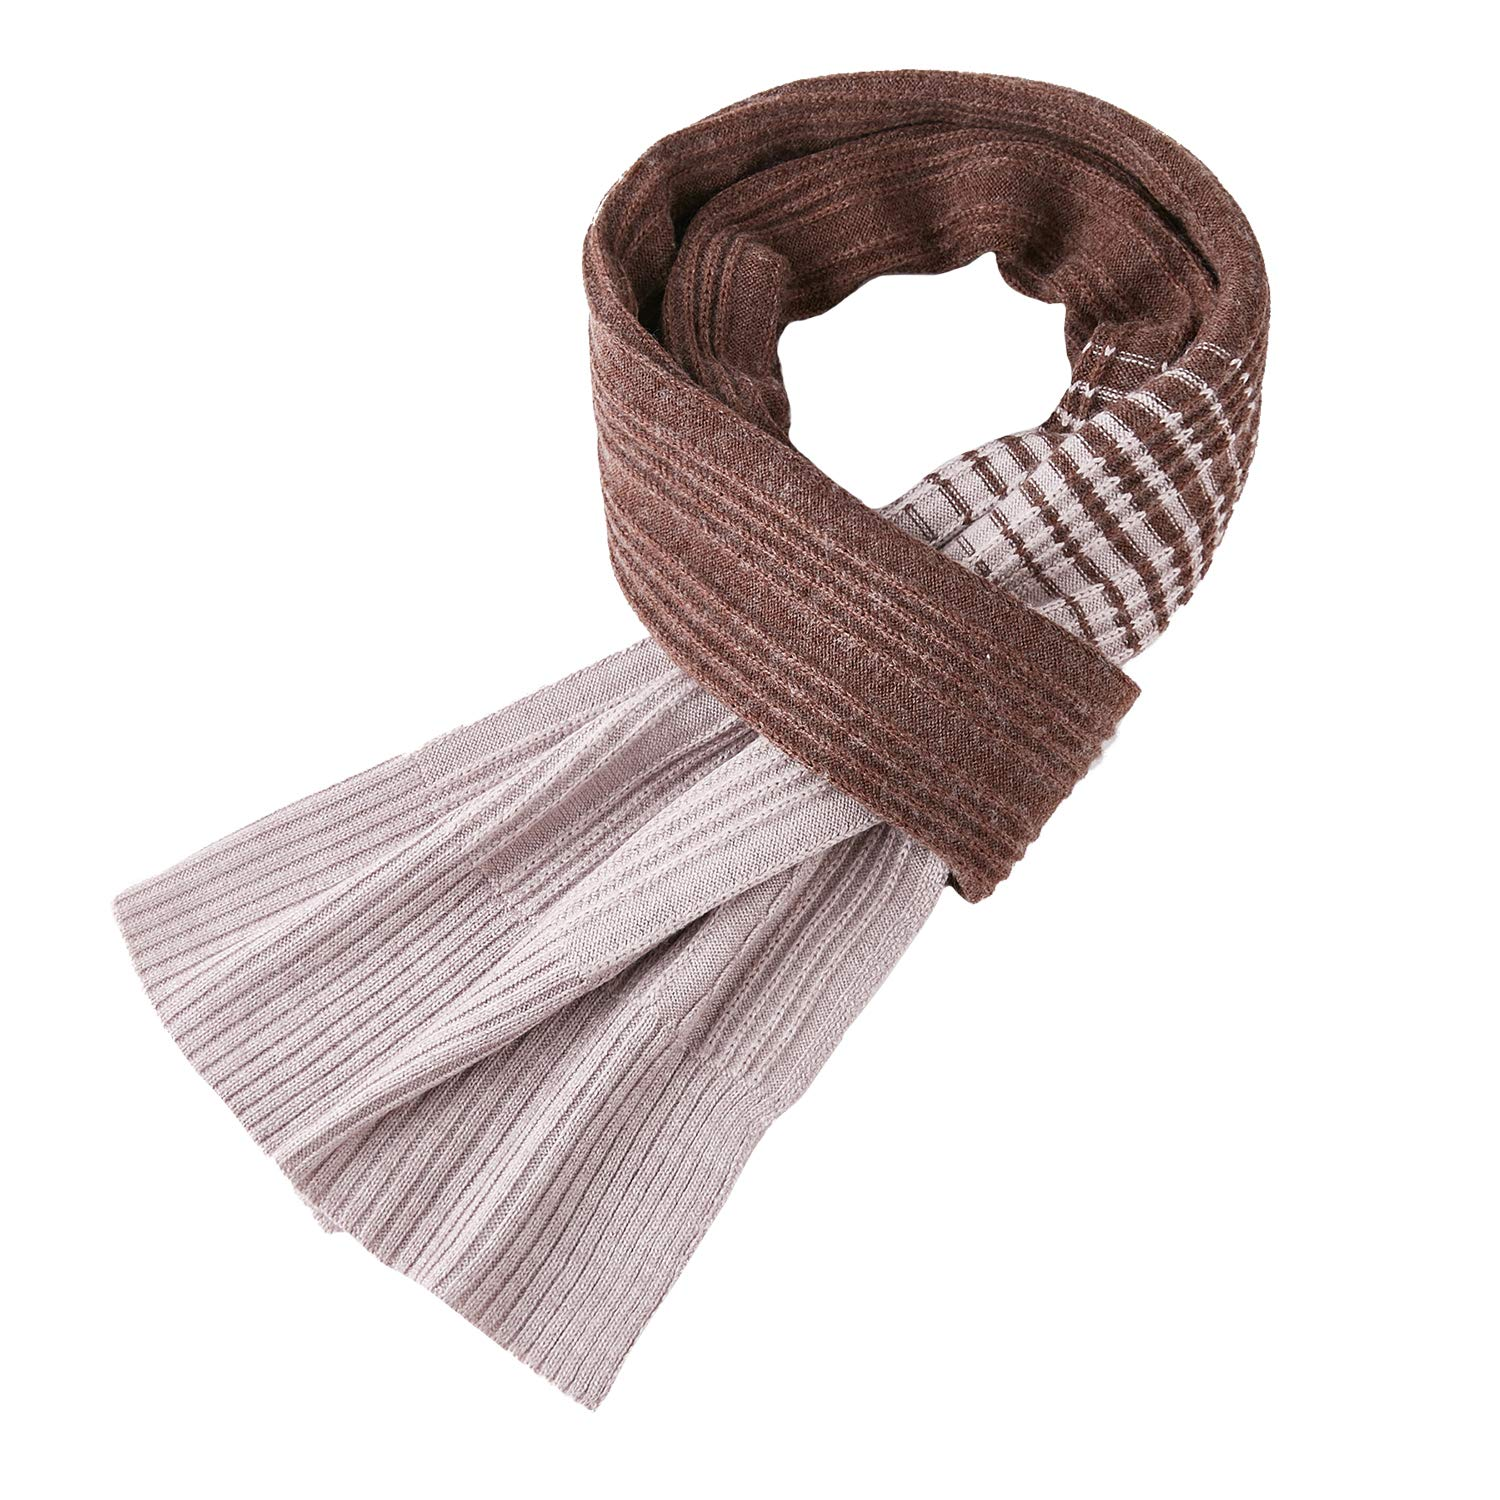 Taylormia Men's Fashion Warm Thick Long Knit Cashmere Scarf for Fall & Winter coffee